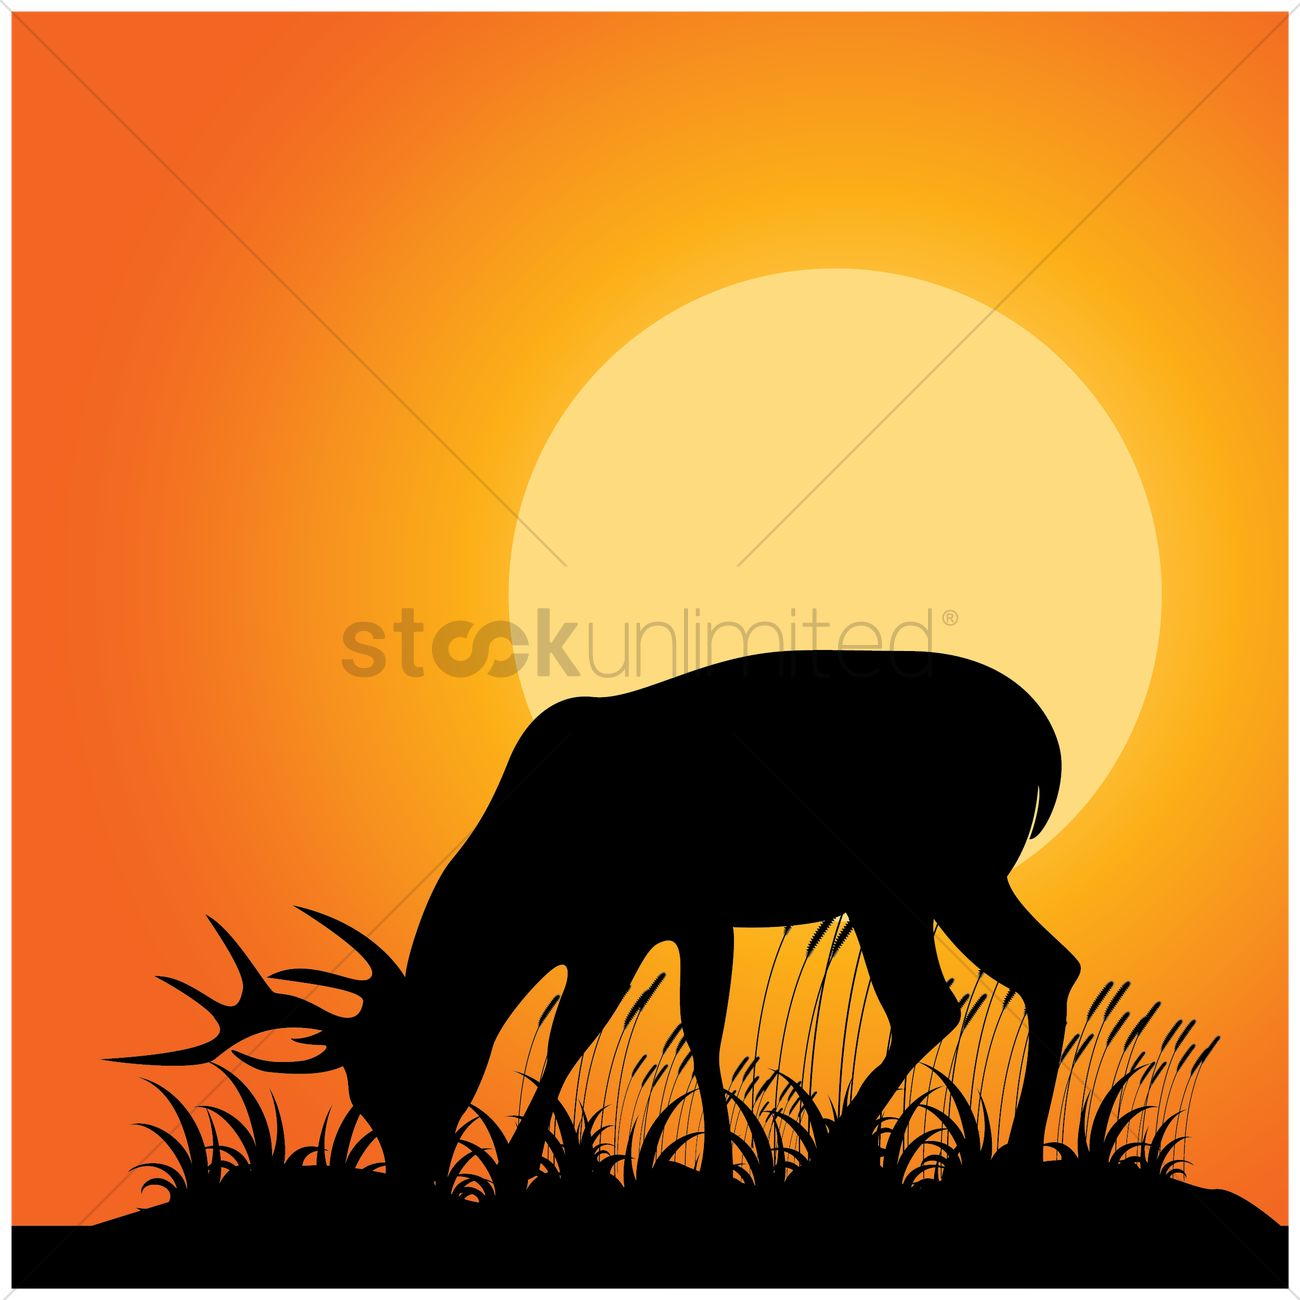 1300x1300 Silhouette Of Reindeer Eating Grass Vector Image